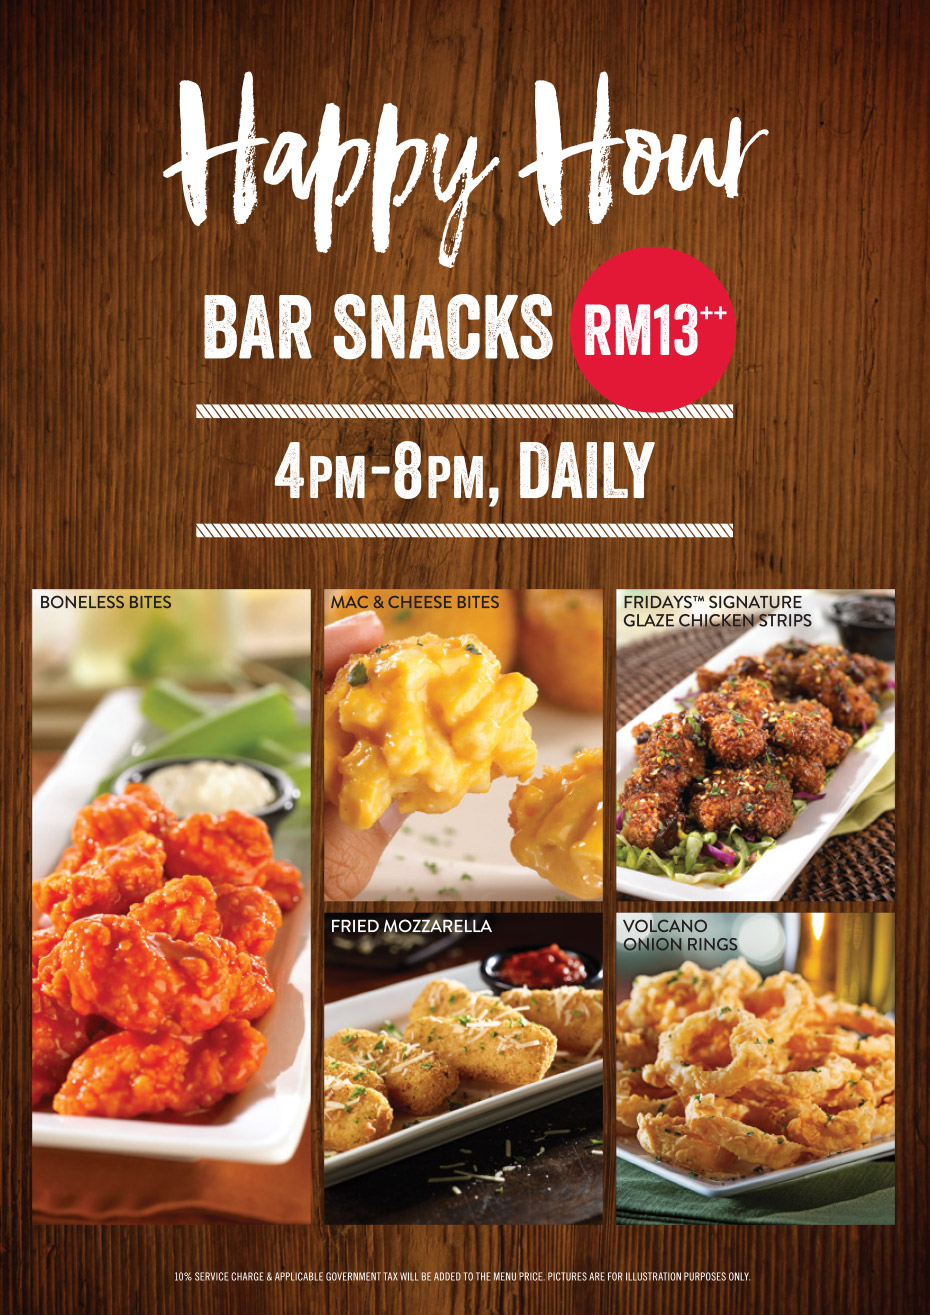 TGIF Happy Hour Bar Snacks